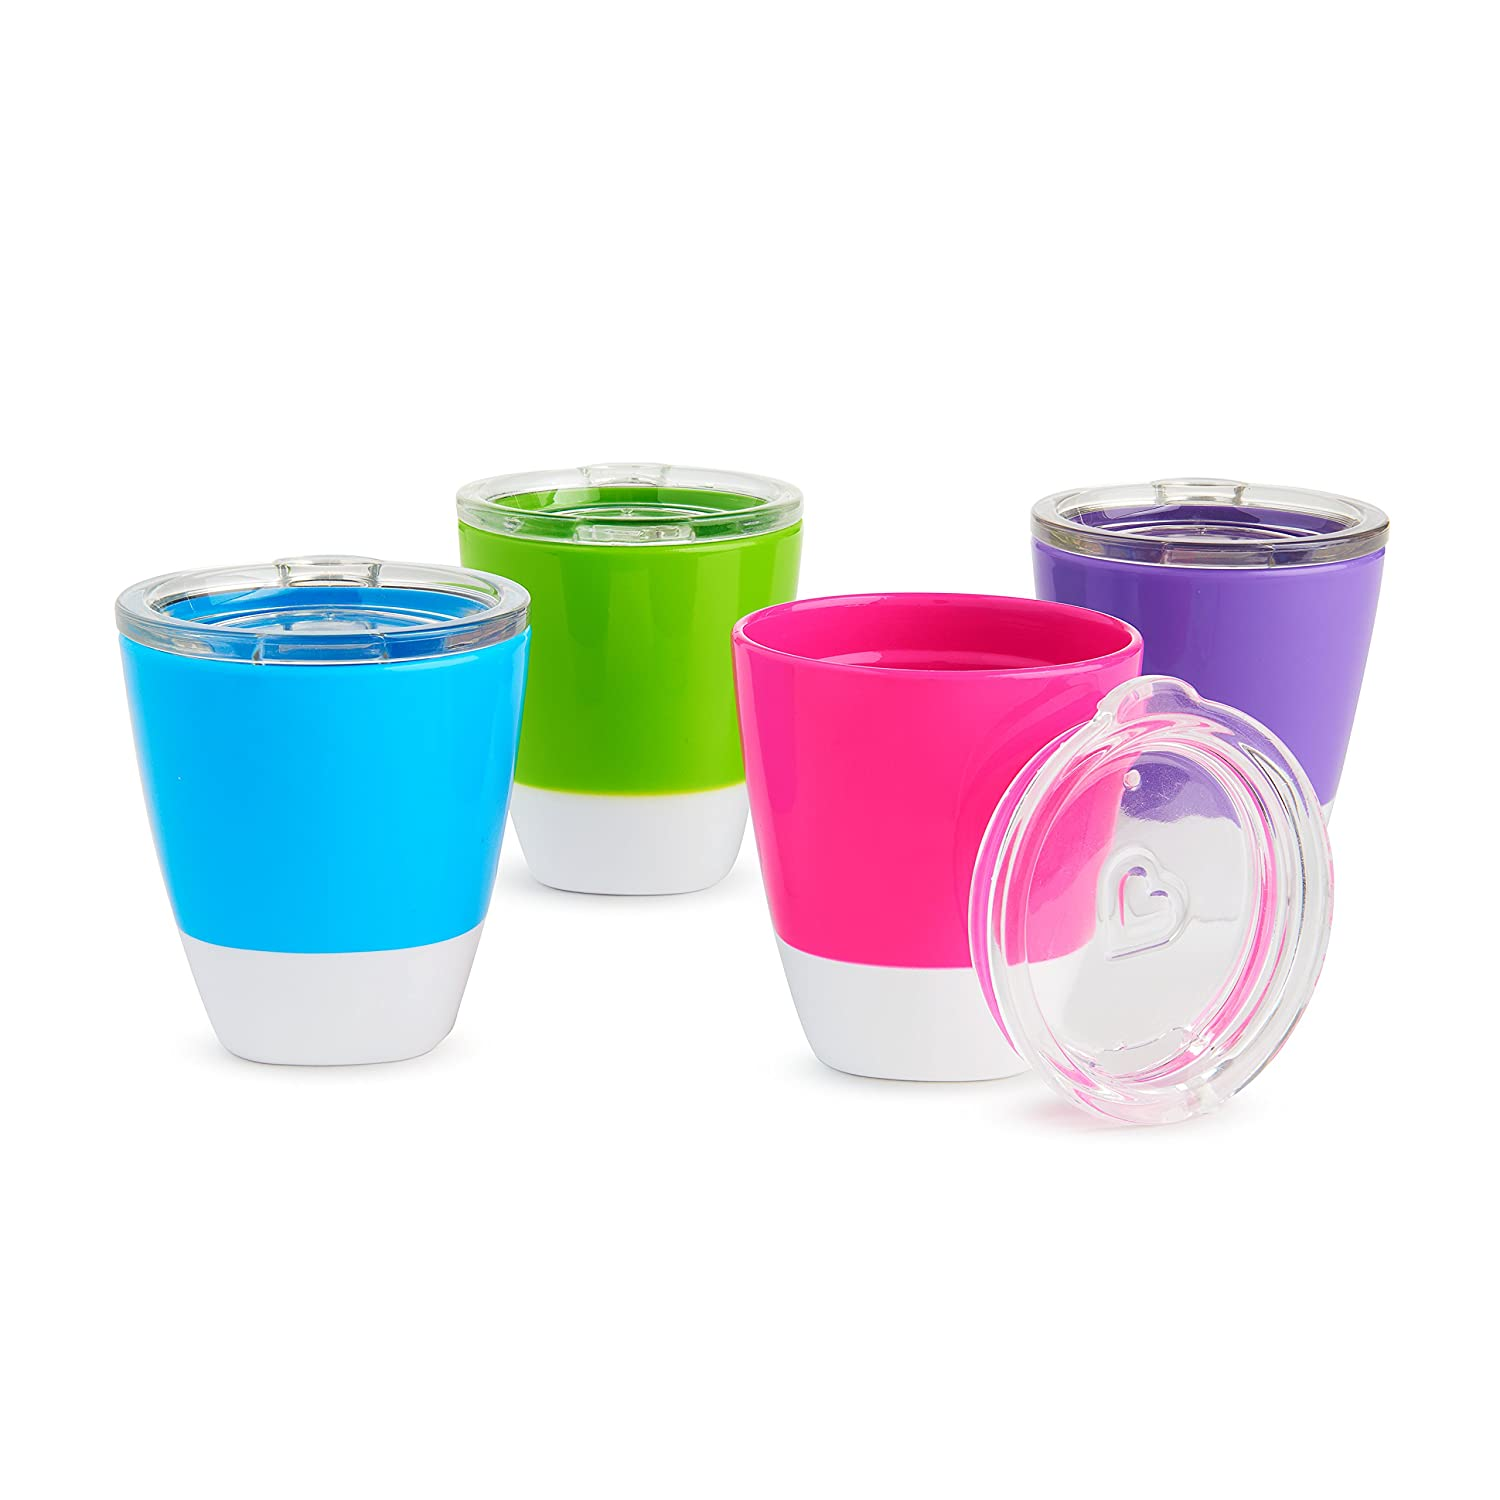 Munchkin Splash Toddler Cups with Training Lids, 4 Pack Inc. 27167